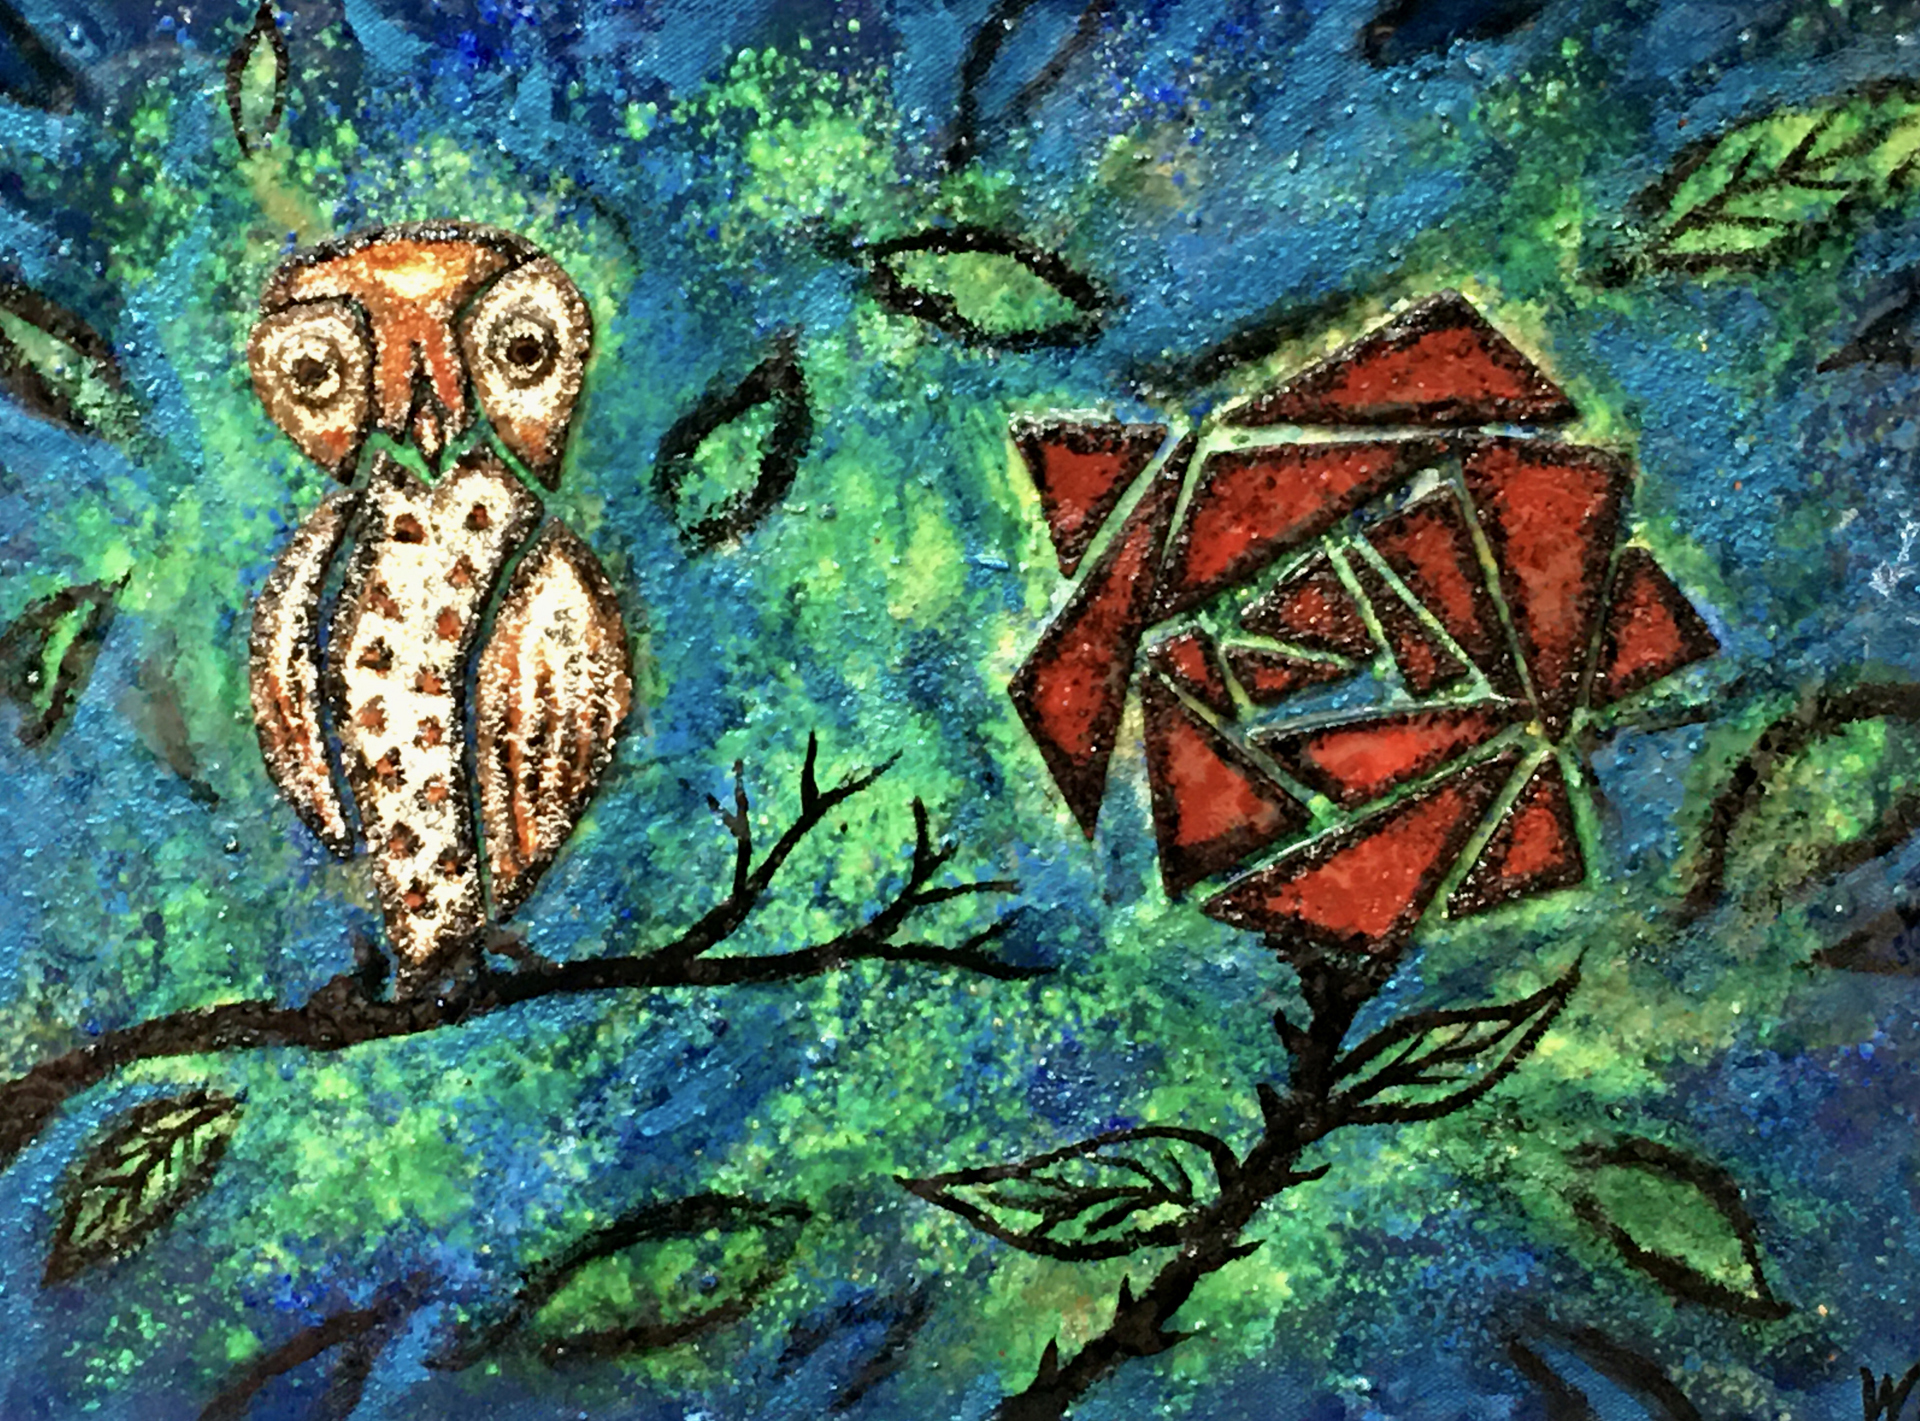 Pygmy Owl and The Rose